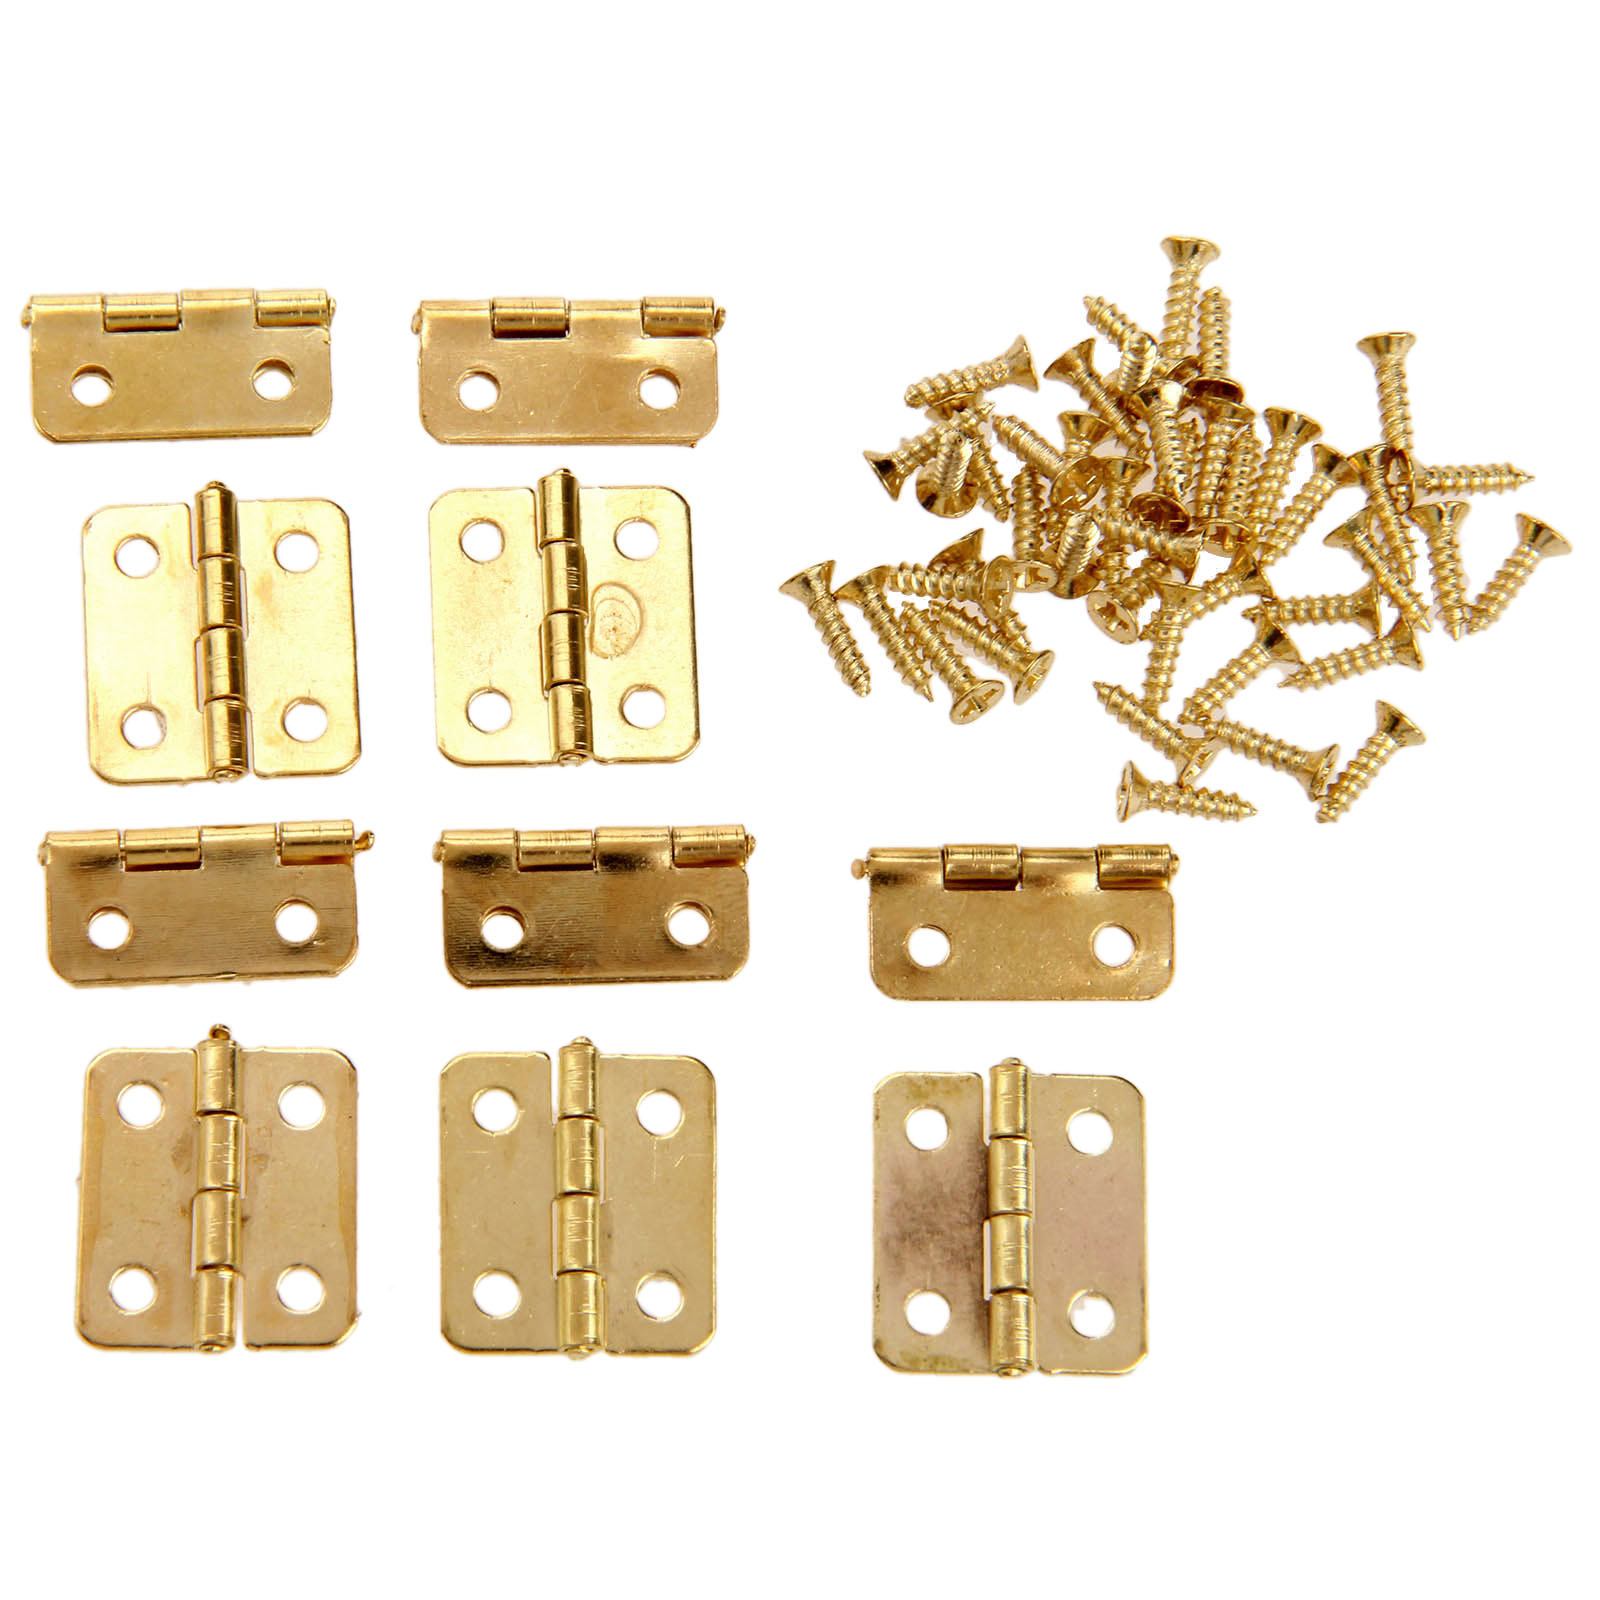 Aliexpress.com  Buy 50Pcs 18x16mm Kitchen Cabinet Door Hinges Furniture Accessories 4 Holes Gold Drawer Hinges for Jewelry Boxes Furniture Fittings from ...  sc 1 st  AliExpress.com & Aliexpress.com : Buy 50Pcs 18x16mm Kitchen Cabinet Door Hinges ... pezcame.com